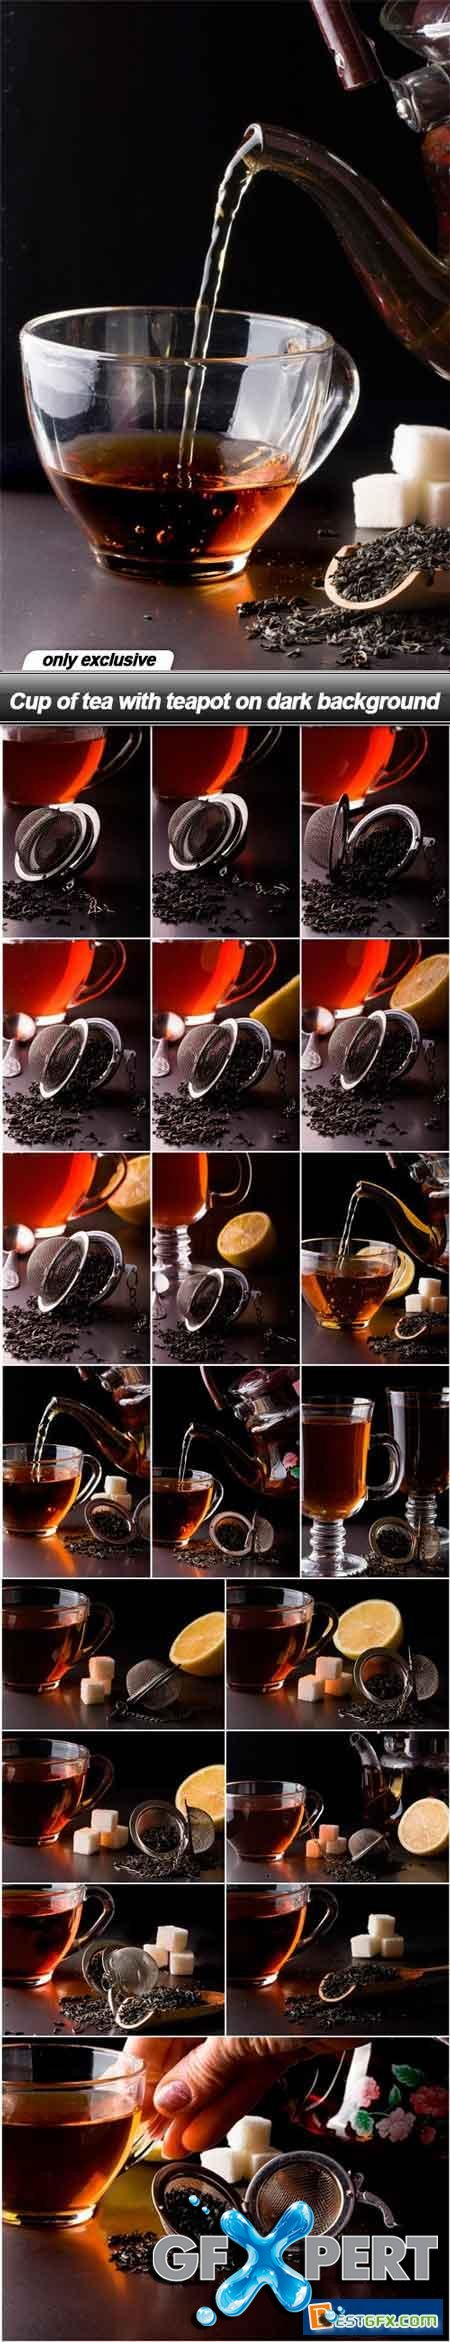 Cup of tea with teapot on dark background - 20 UHQ JPEG